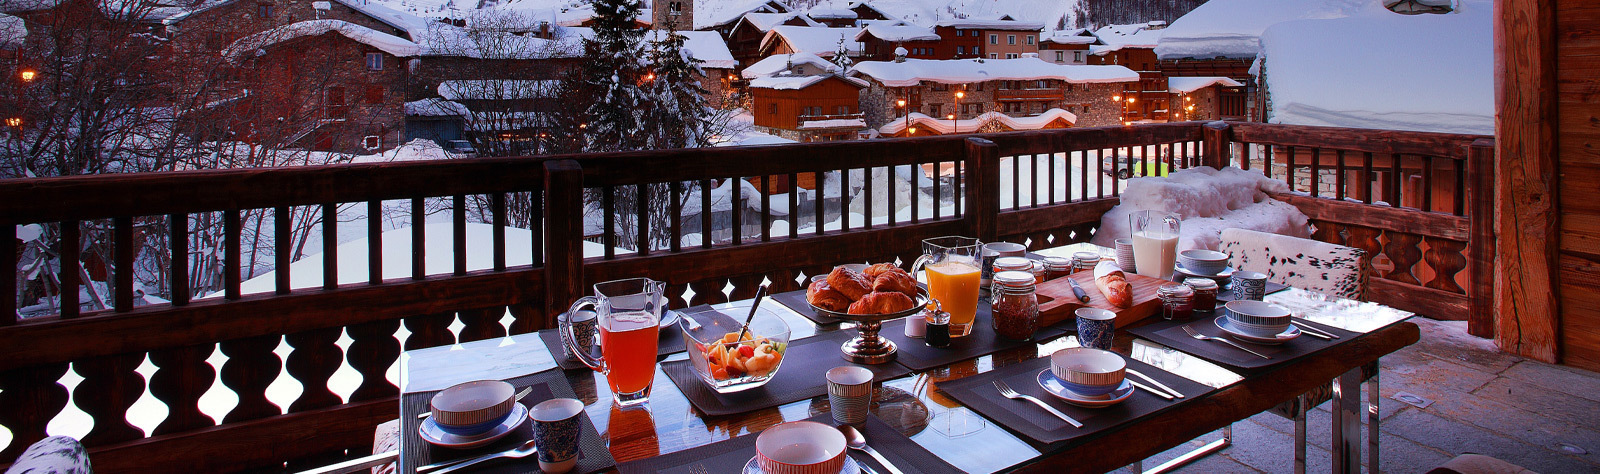 Avoriaz accommodations